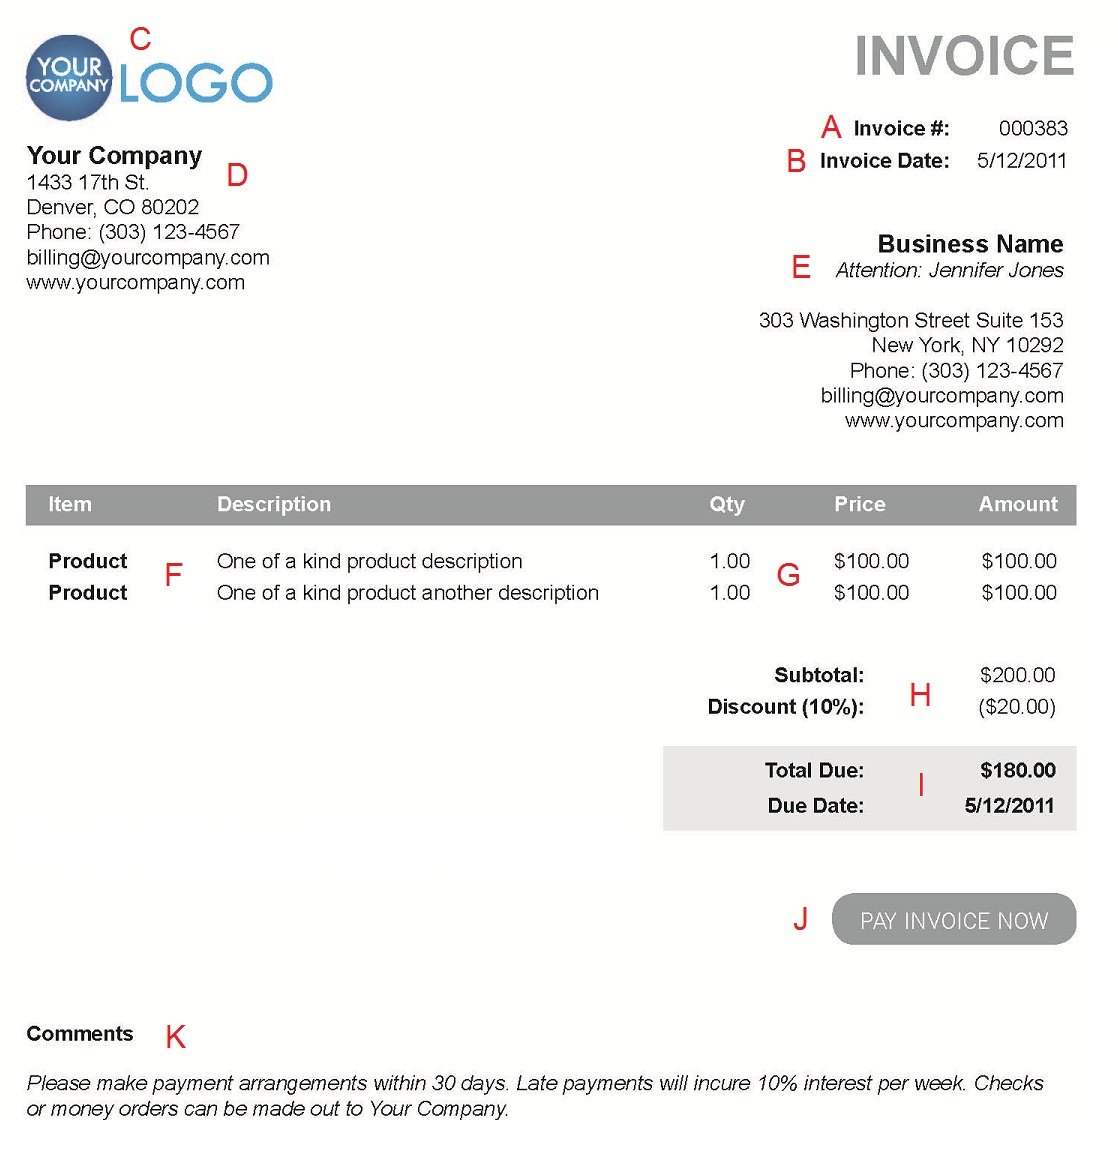 Usdgus  Ravishing The  Different Sections Of An Electronic Payment Invoice With Gorgeous A  With Appealing Invoice Programs Free Also Meaning Of Commercial Invoice In Addition Sample Invoices With Payment Terms And Small Invoice As Well As Invoice Template Creator Additionally Advance Payment Invoice Sample From Paysimplecom With Usdgus  Gorgeous The  Different Sections Of An Electronic Payment Invoice With Appealing A  And Ravishing Invoice Programs Free Also Meaning Of Commercial Invoice In Addition Sample Invoices With Payment Terms From Paysimplecom